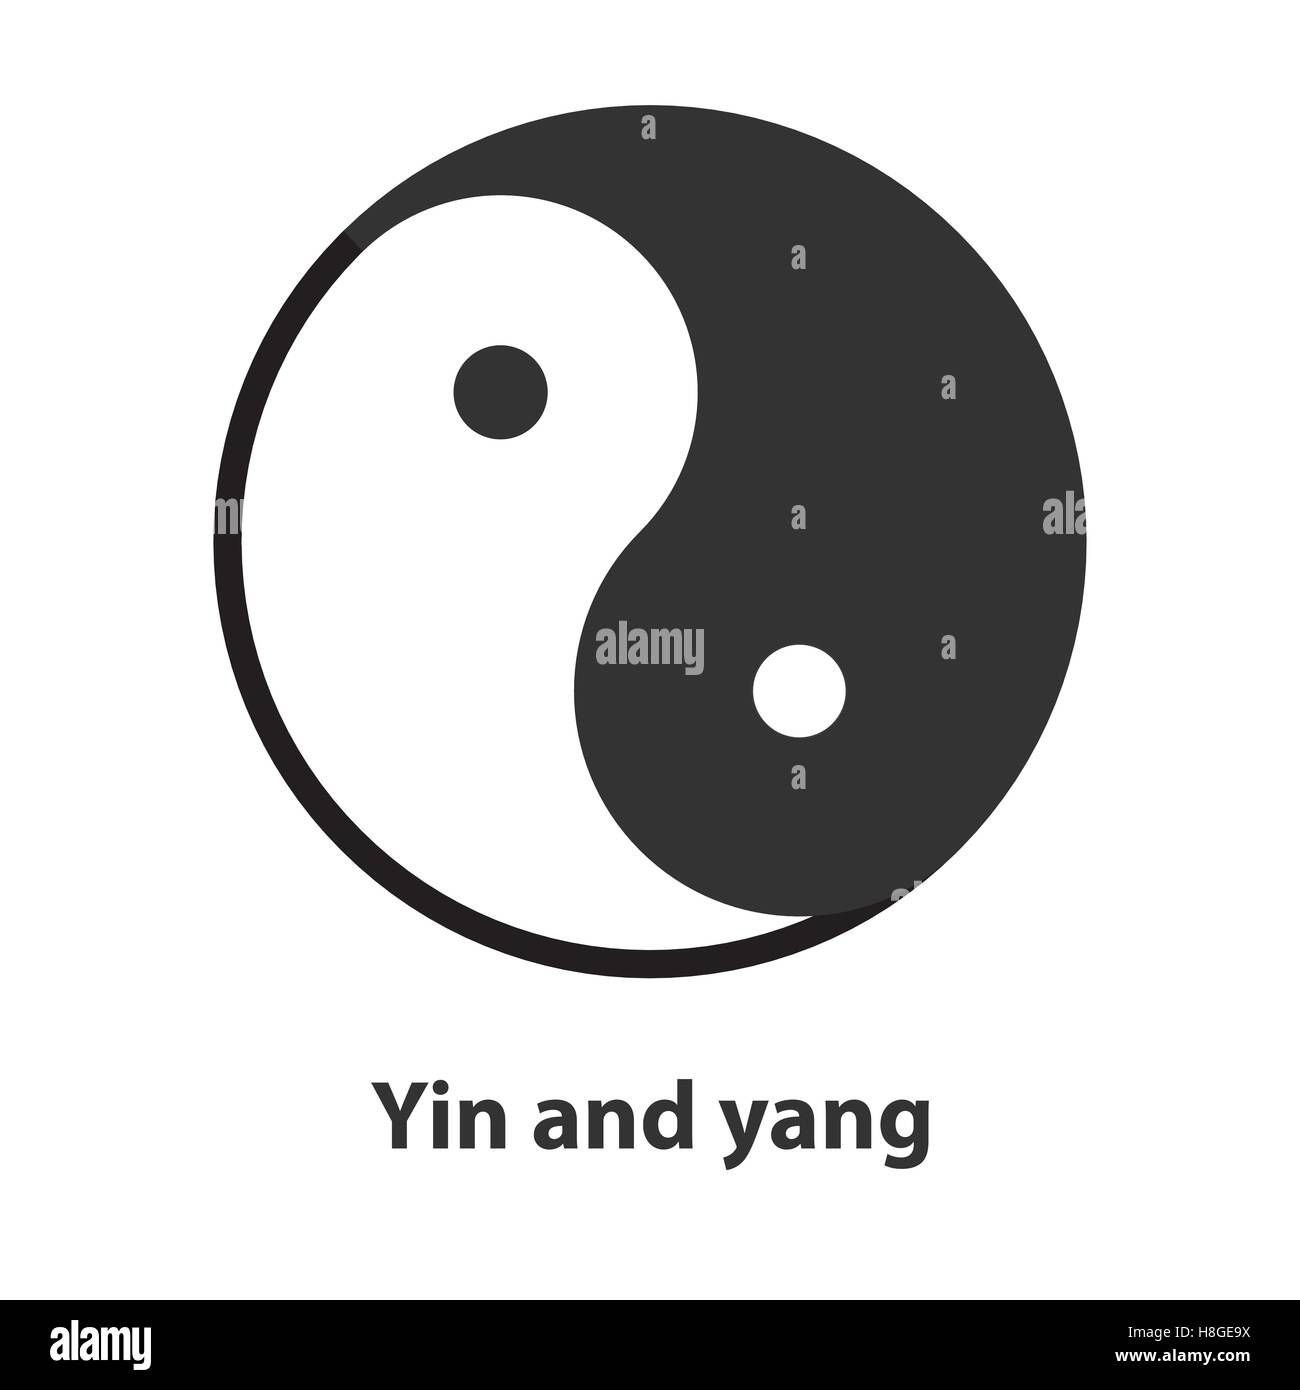 Icon of yin yang symbol taoism buddhism daoism religion sign icon of yin yang symbol taoism buddhism daoism religion sign biocorpaavc